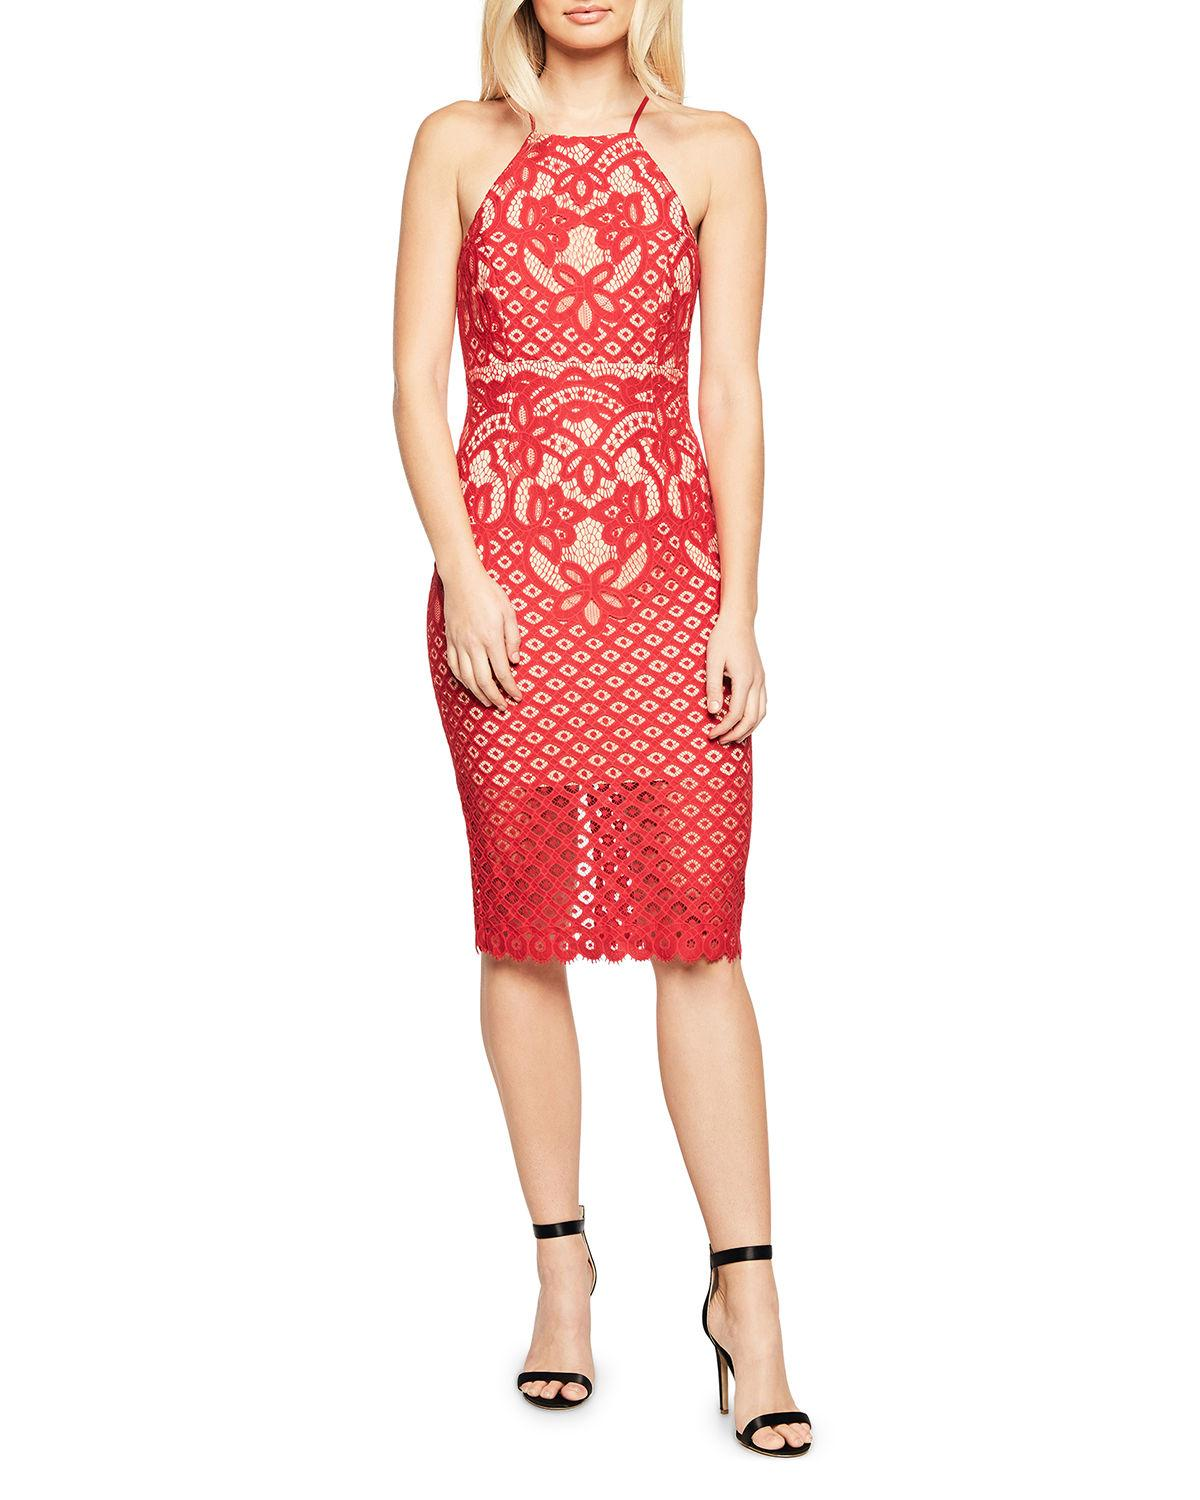 Mila Lace High Neck Dress In Red